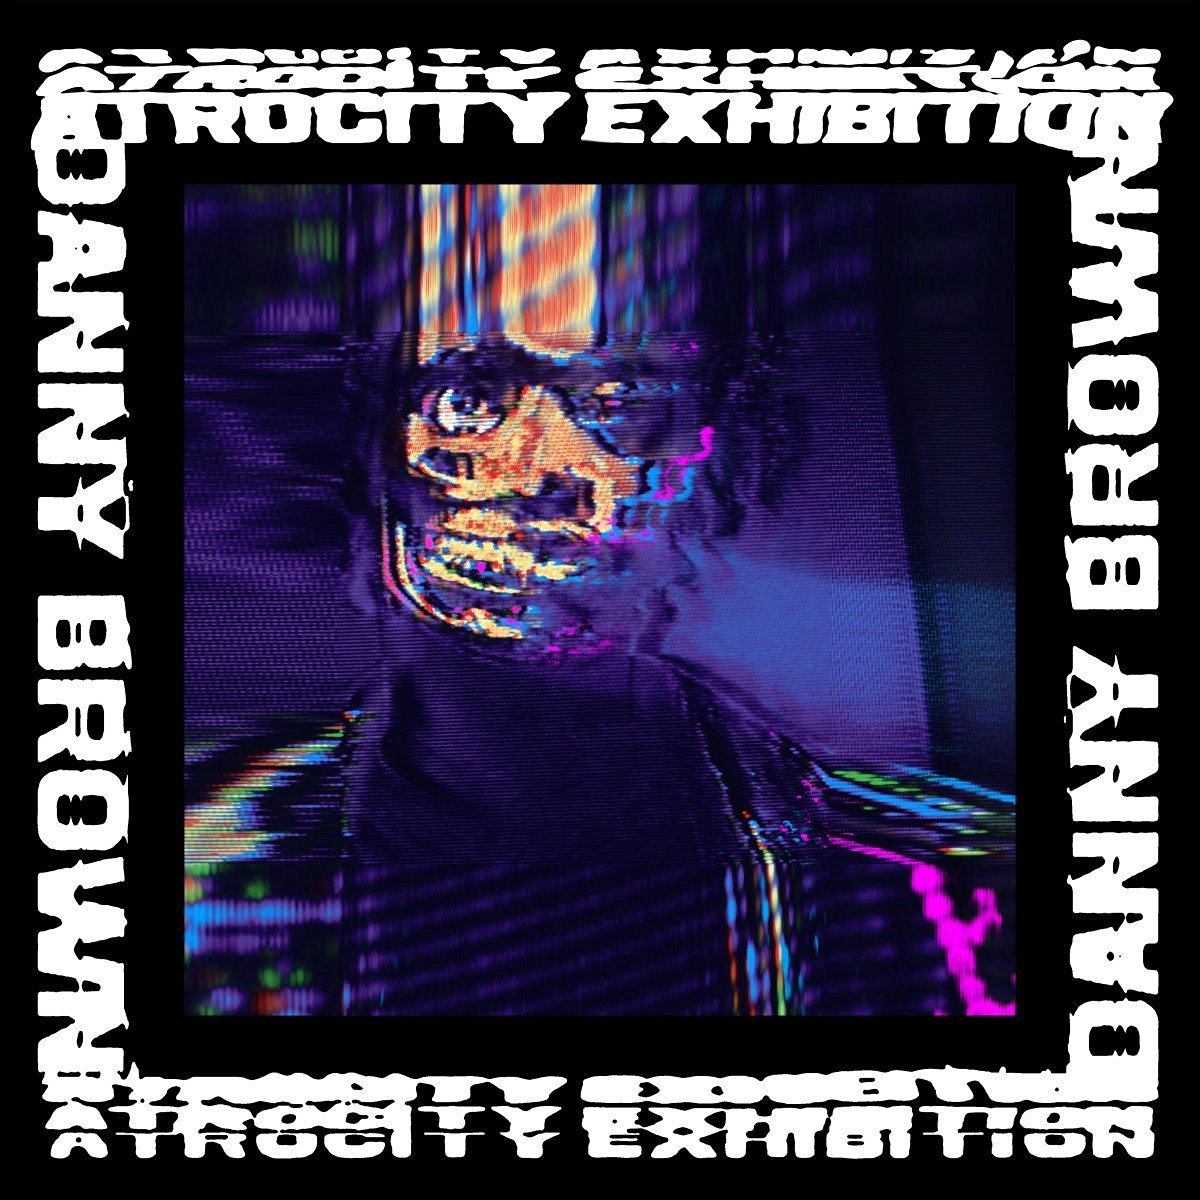 Danny Brown Delivers Eccentric Gem with 'Atrocity Exhibition'